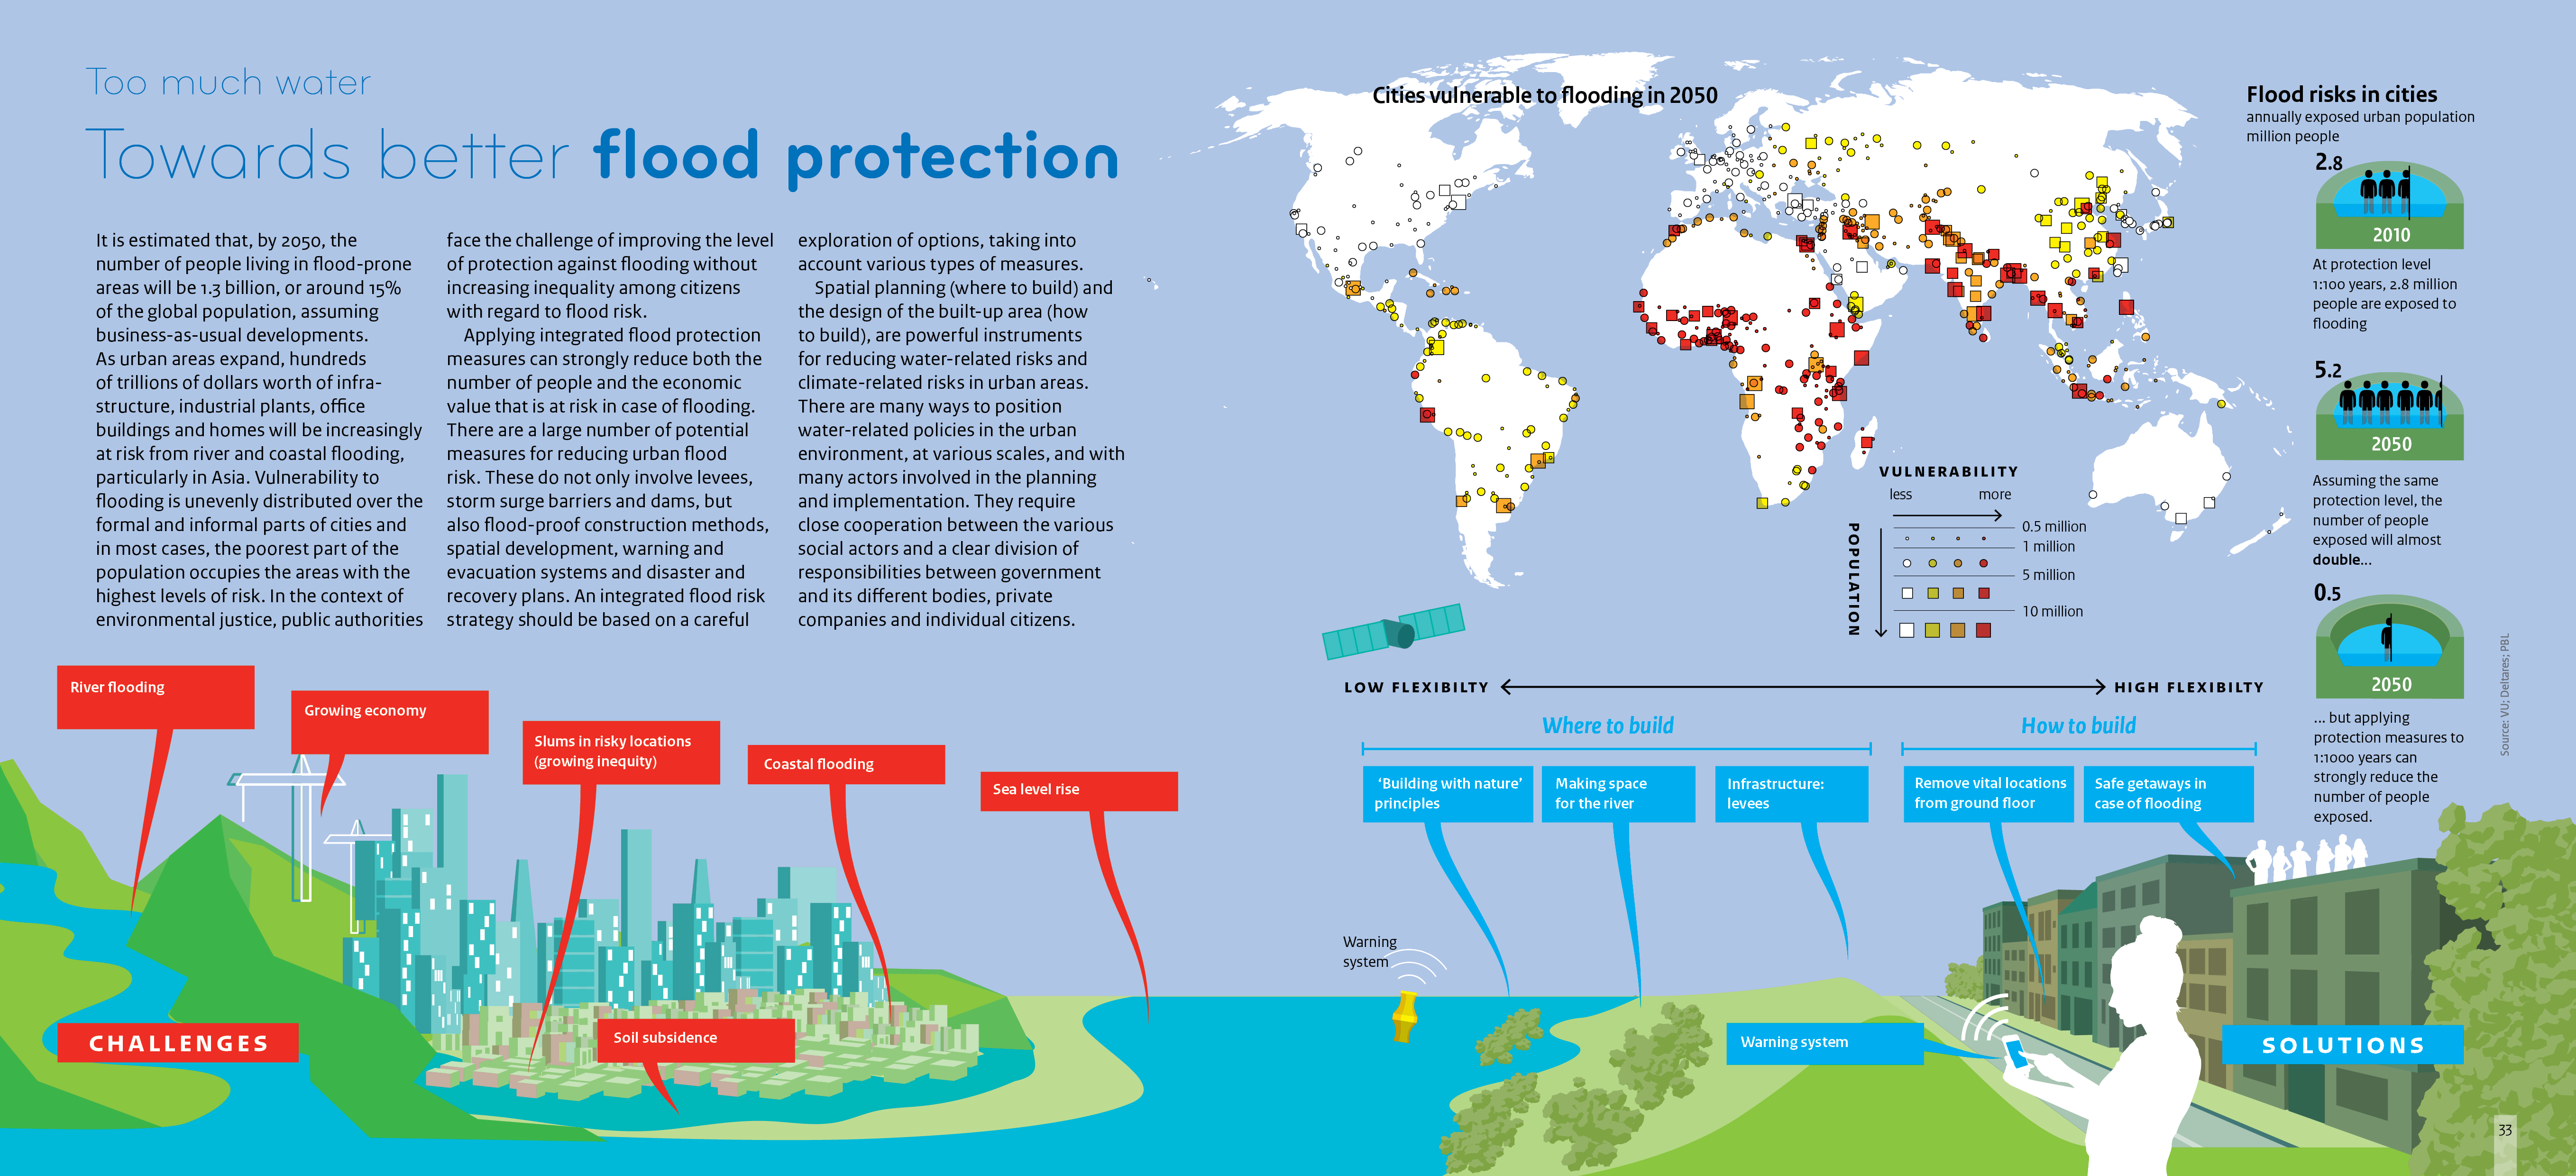 Cities vulnerable to flooding in 2050 are mostly in Sub-Saharan Africa and Southeast Asia, and in coastal zones. Infographic right shows flood risk in cities, where flood risk will double by 2050 at a 1:100 protection level. Illustration shows various challenges including coastal flooding, and solutions, such as building with nature principles.